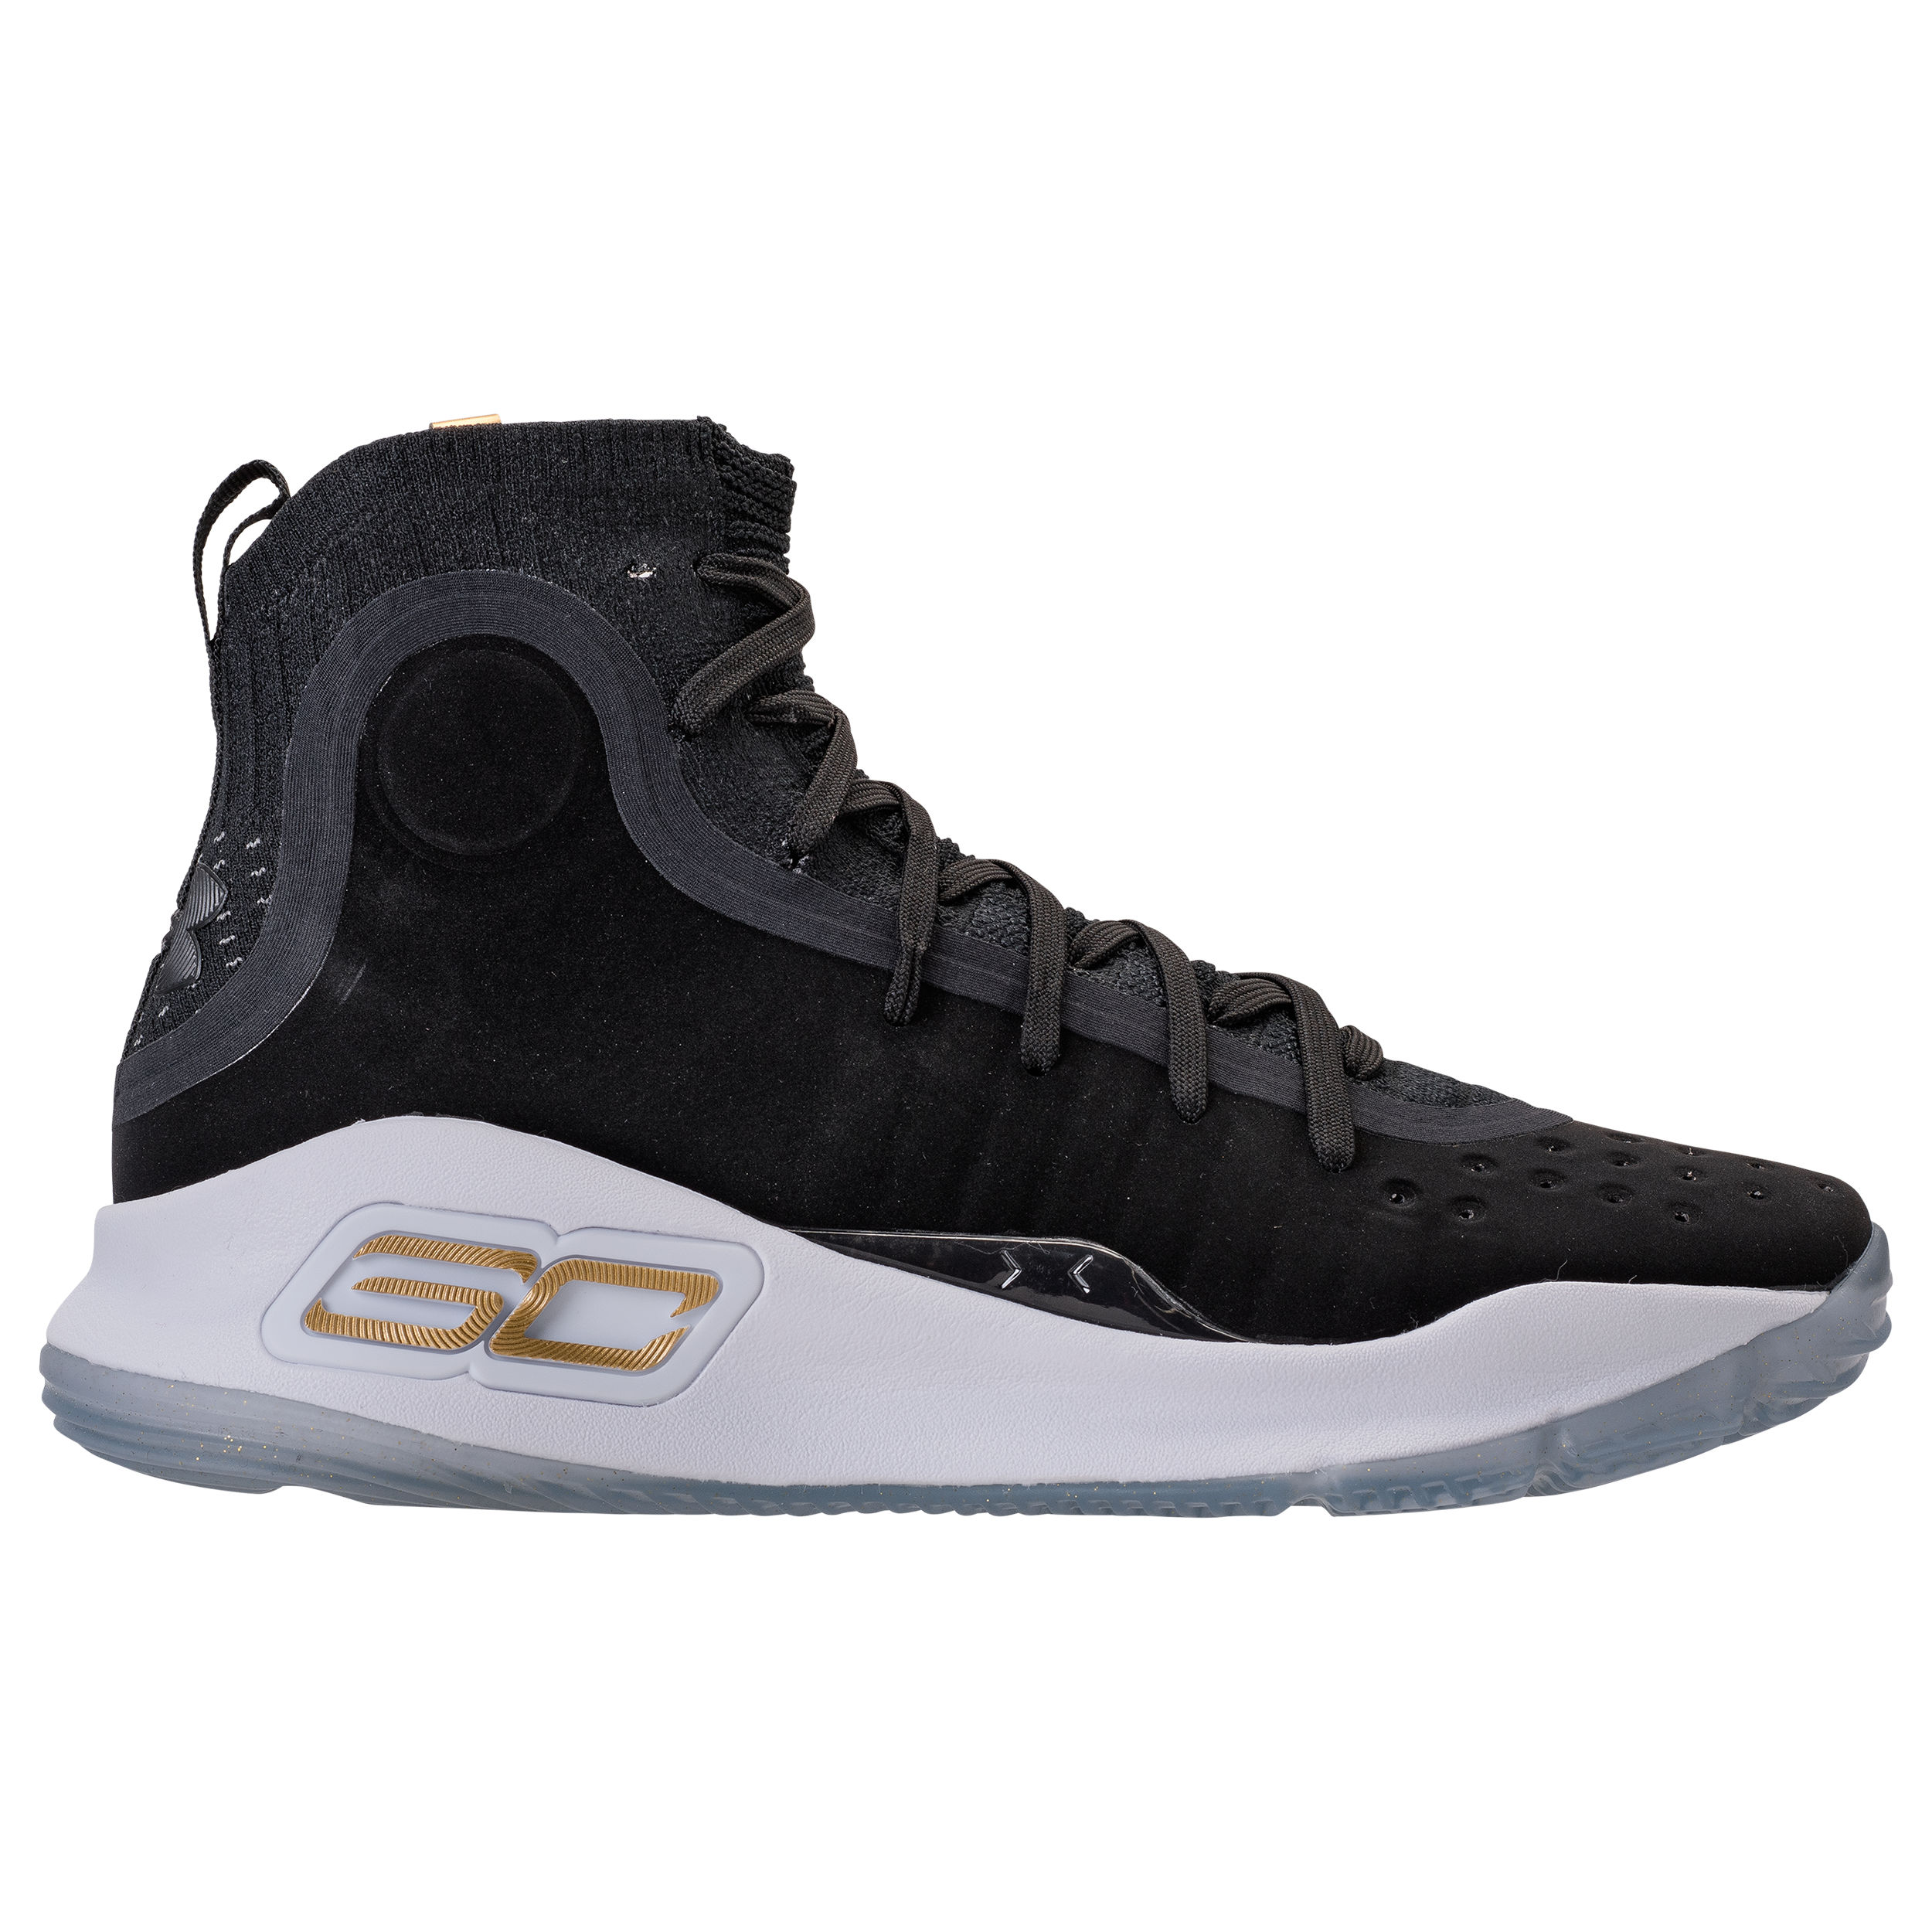 3ddc86cee090 The Second Part of the Curry 4 Champ Pack is Releasing Solo Next ...